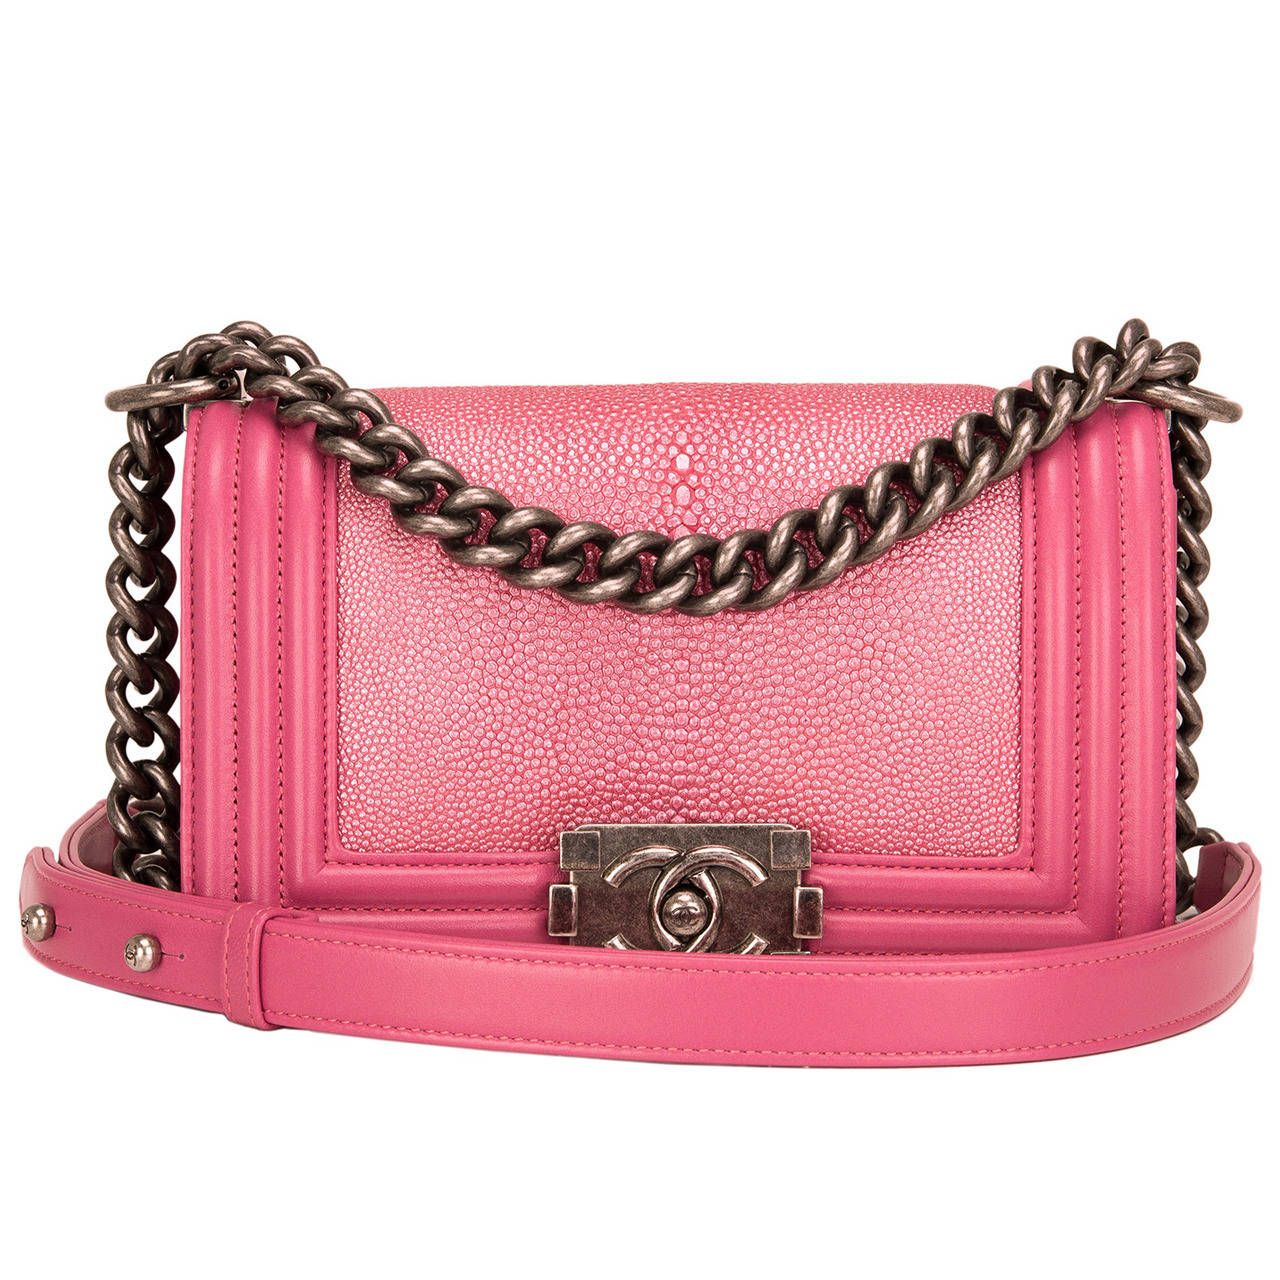 4bae96a9f91326 Chanel Metallic Pink Stingray Small Boy Bag | From a collection of rare  vintage shoulder bags